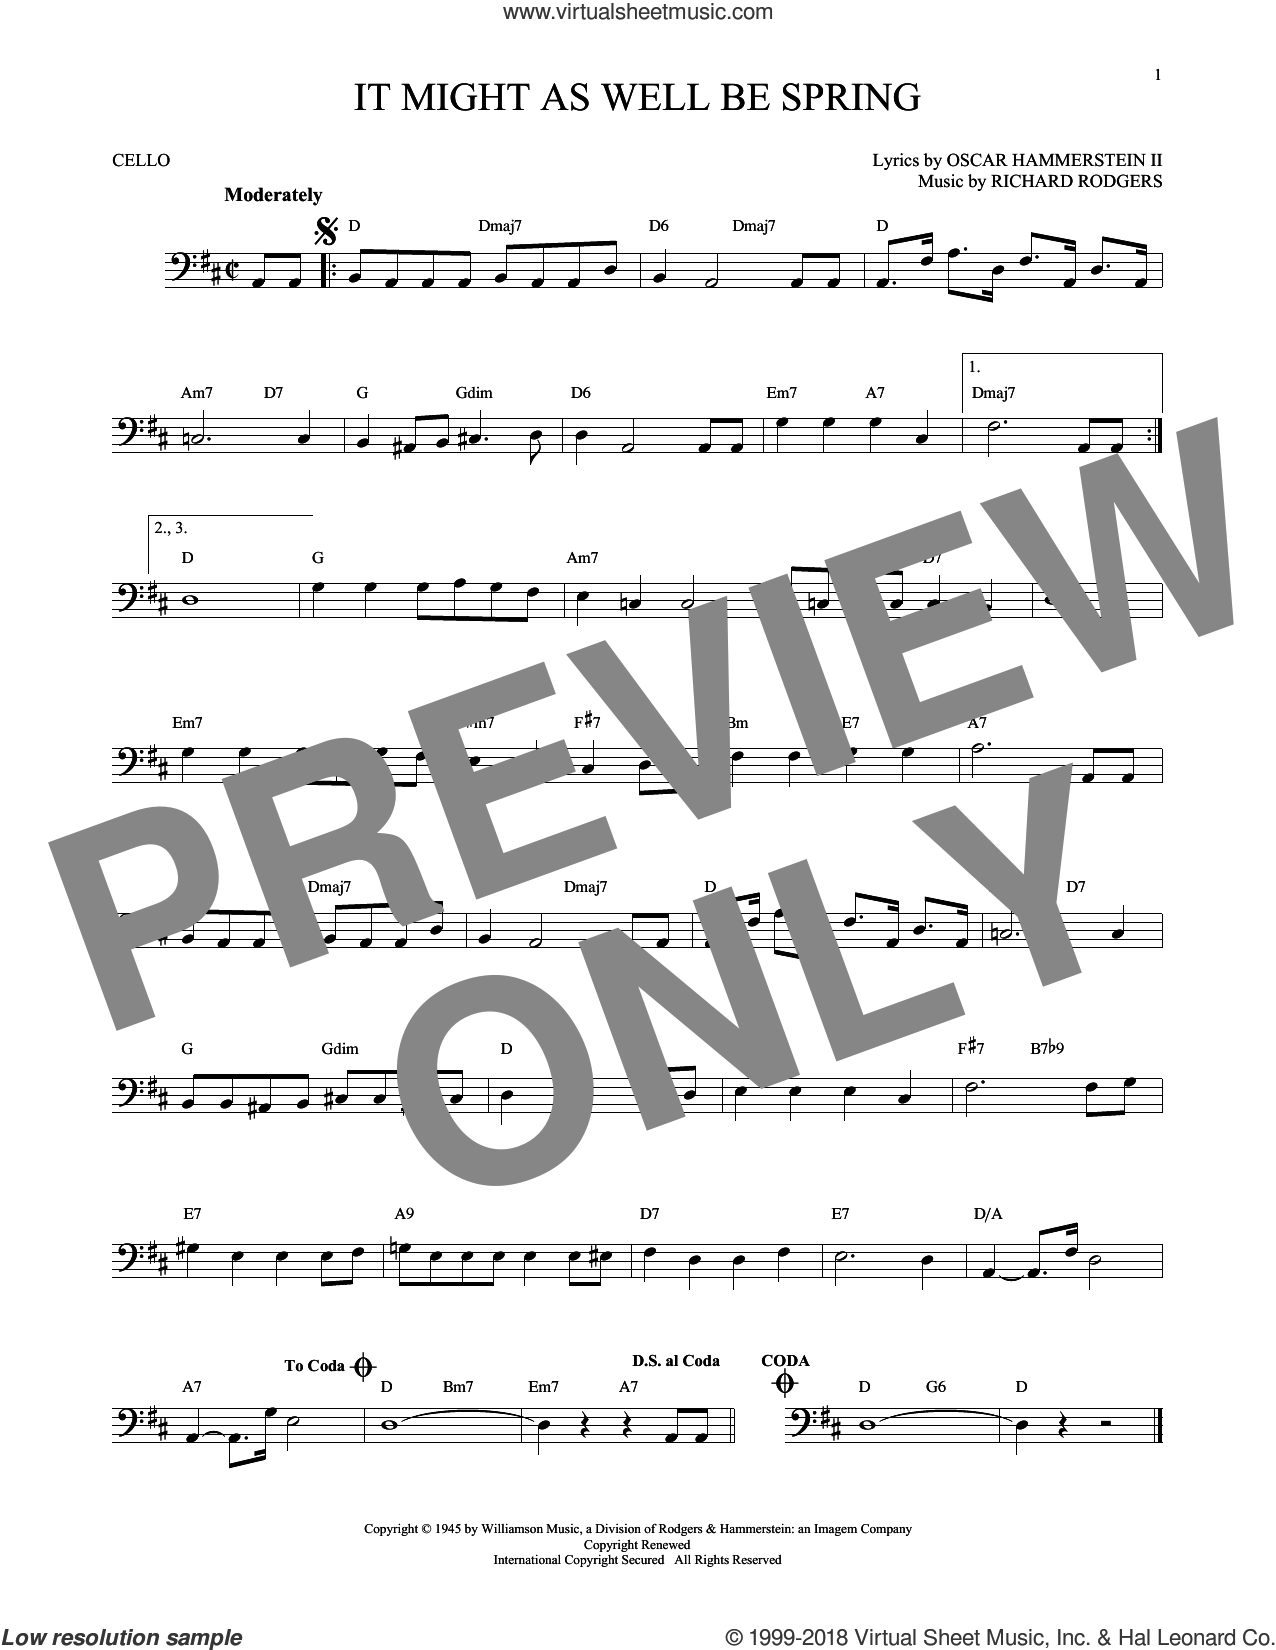 It Might As Well Be Spring sheet music for cello solo by Rodgers & Hammerstein, Oscar II Hammerstein and Richard Rodgers, intermediate skill level